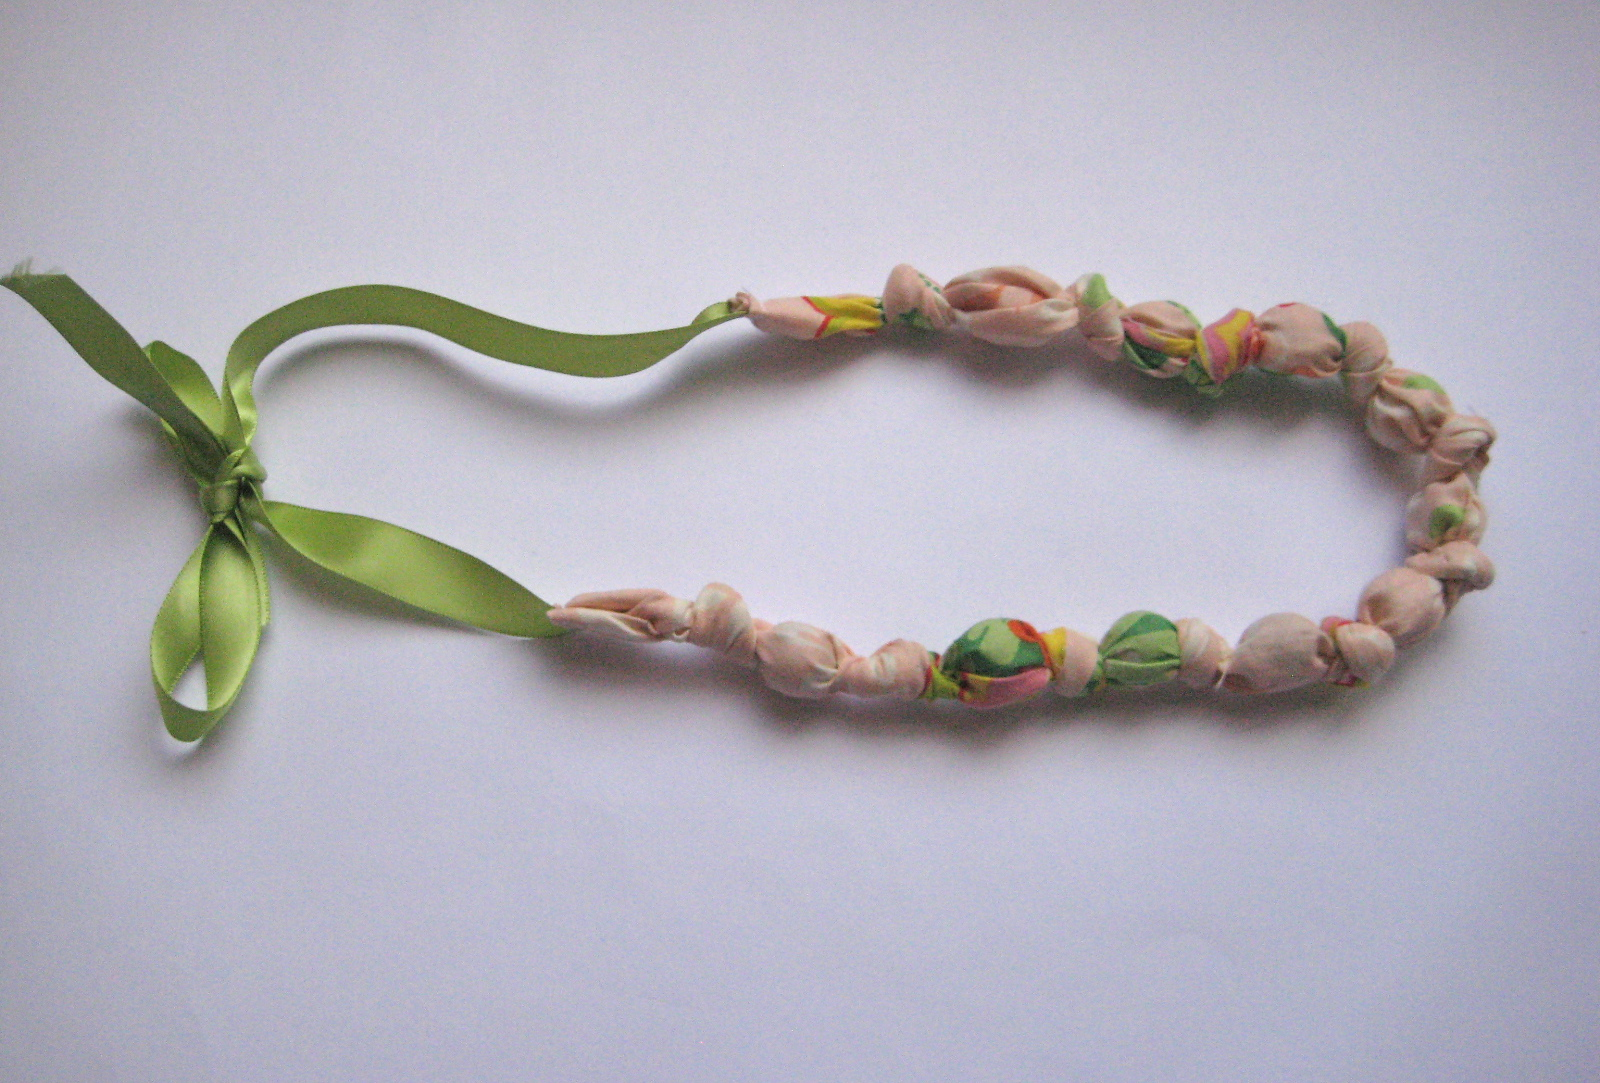 bead knot fabric necklace tutorial skip to my lou